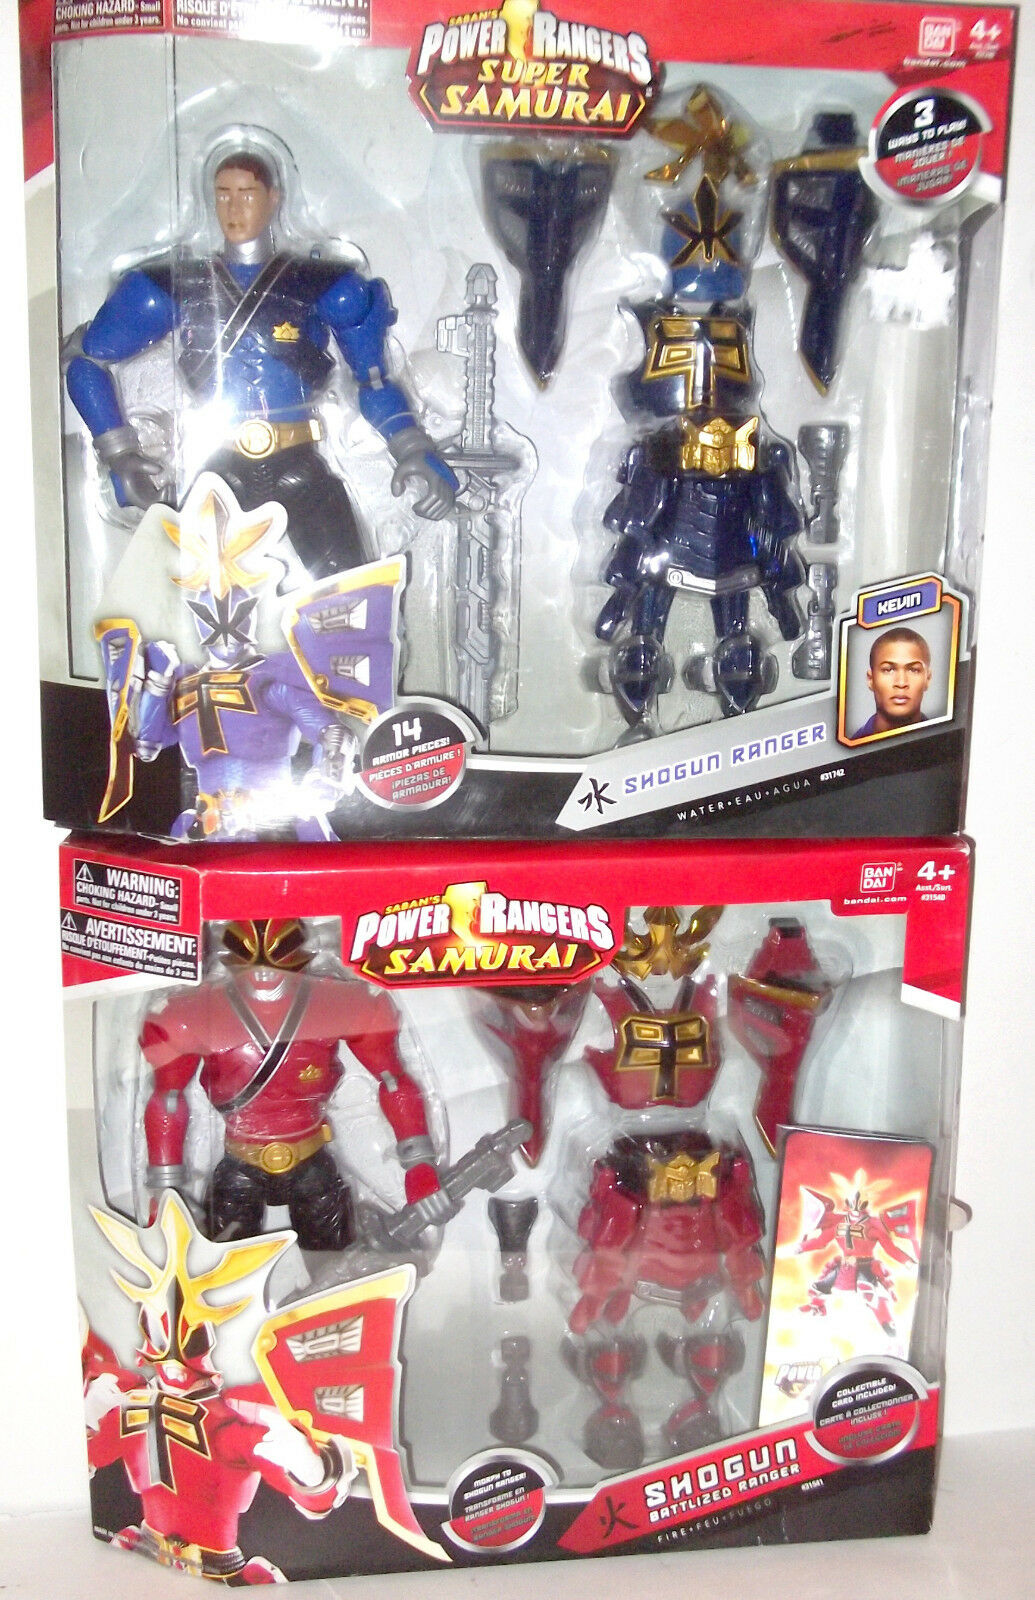 Power Rangers ✰ 12  Battlized Shogun Rojo Azul Agua Samurai Armor Figura Sellada